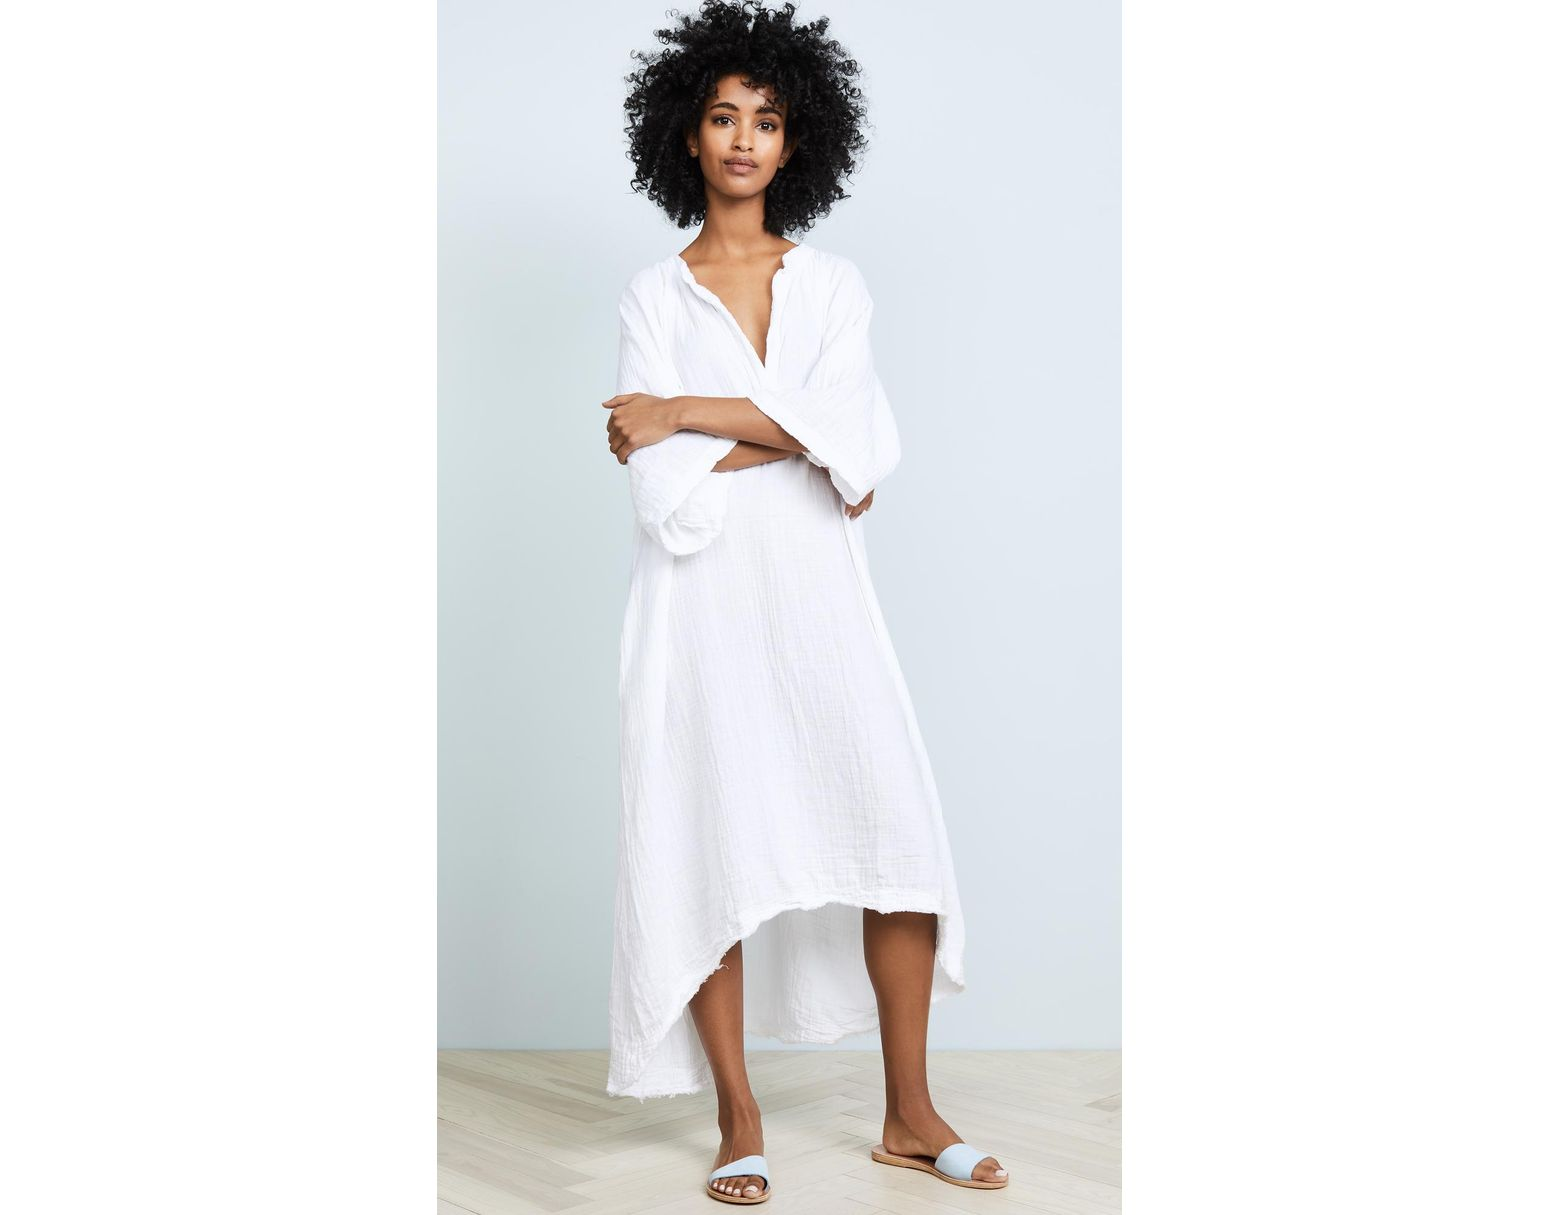 b5f2a43ad 9seed Tangier Caftan in White - Save 15% - Lyst